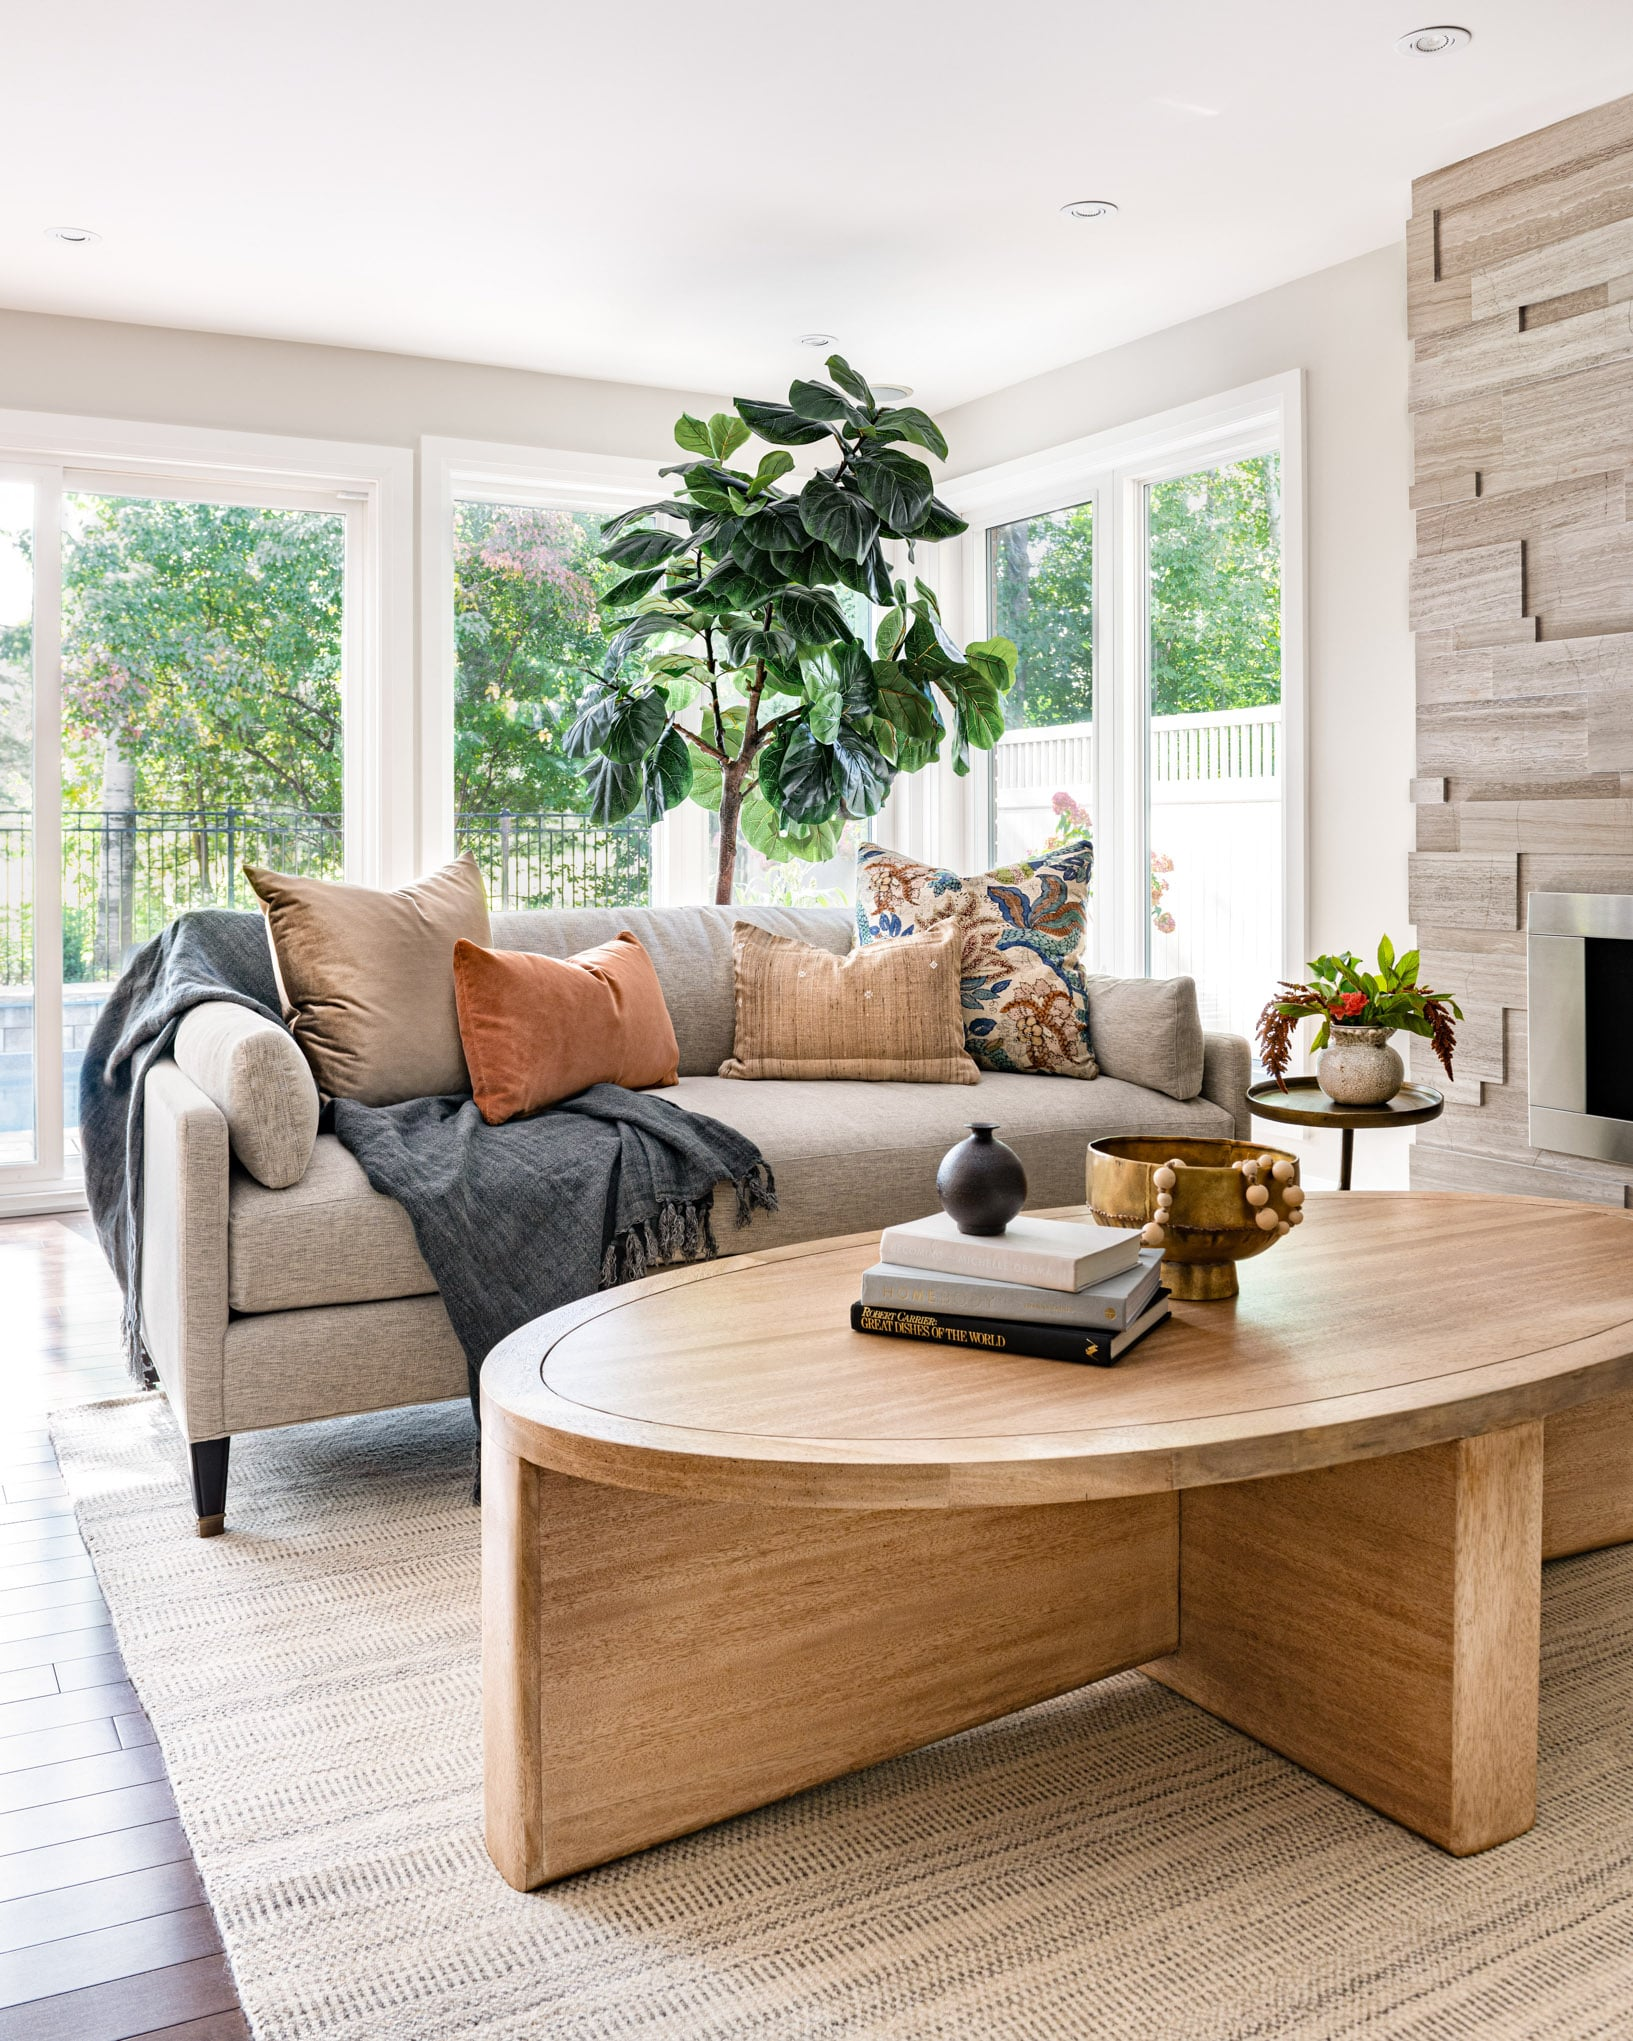 living room with oval table